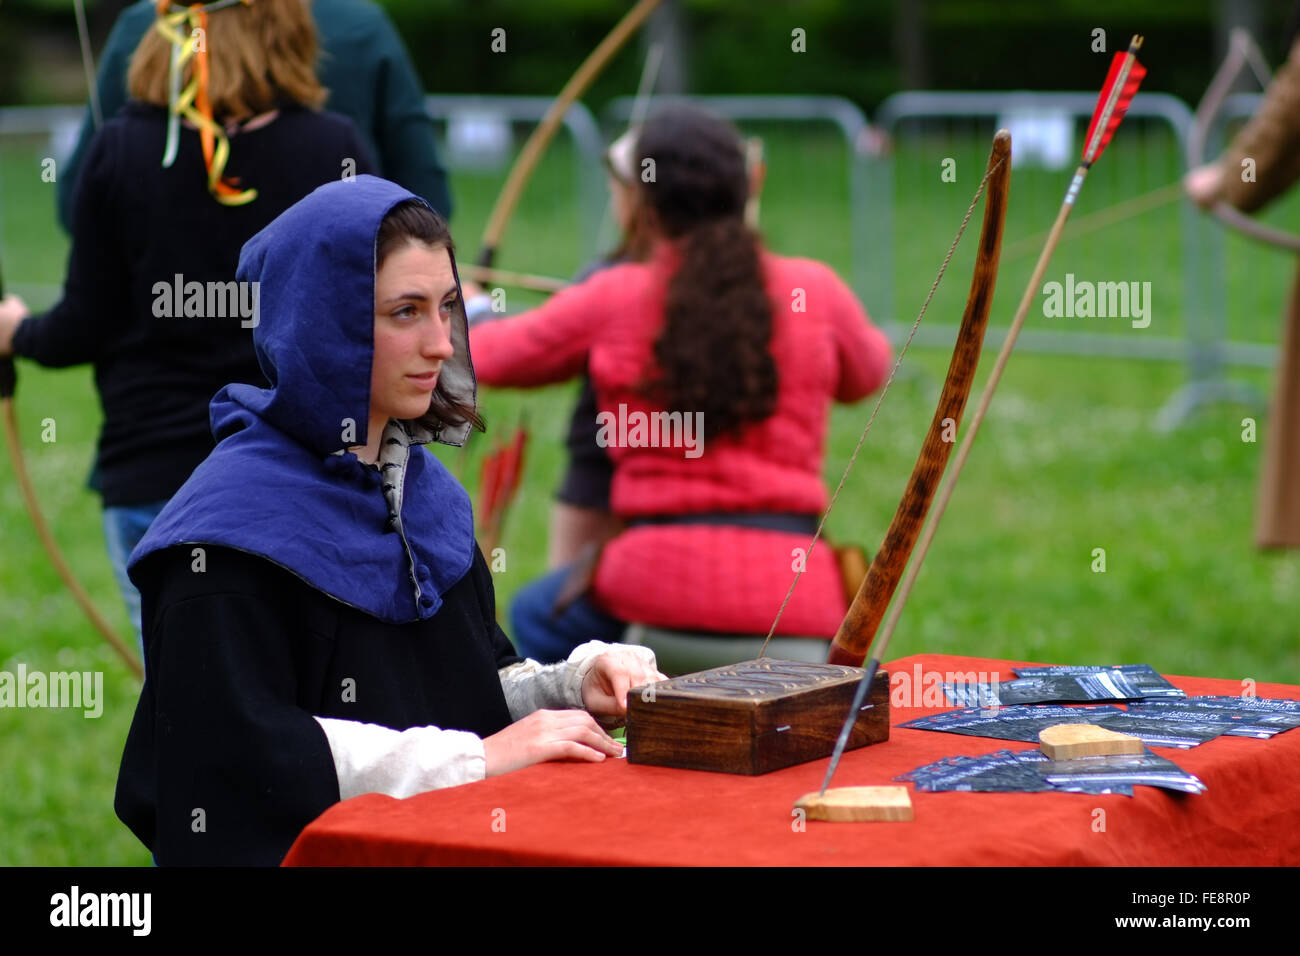 Candid shot taken during the famous games of Carnasciale, this year having place in Florence, - Stock Image